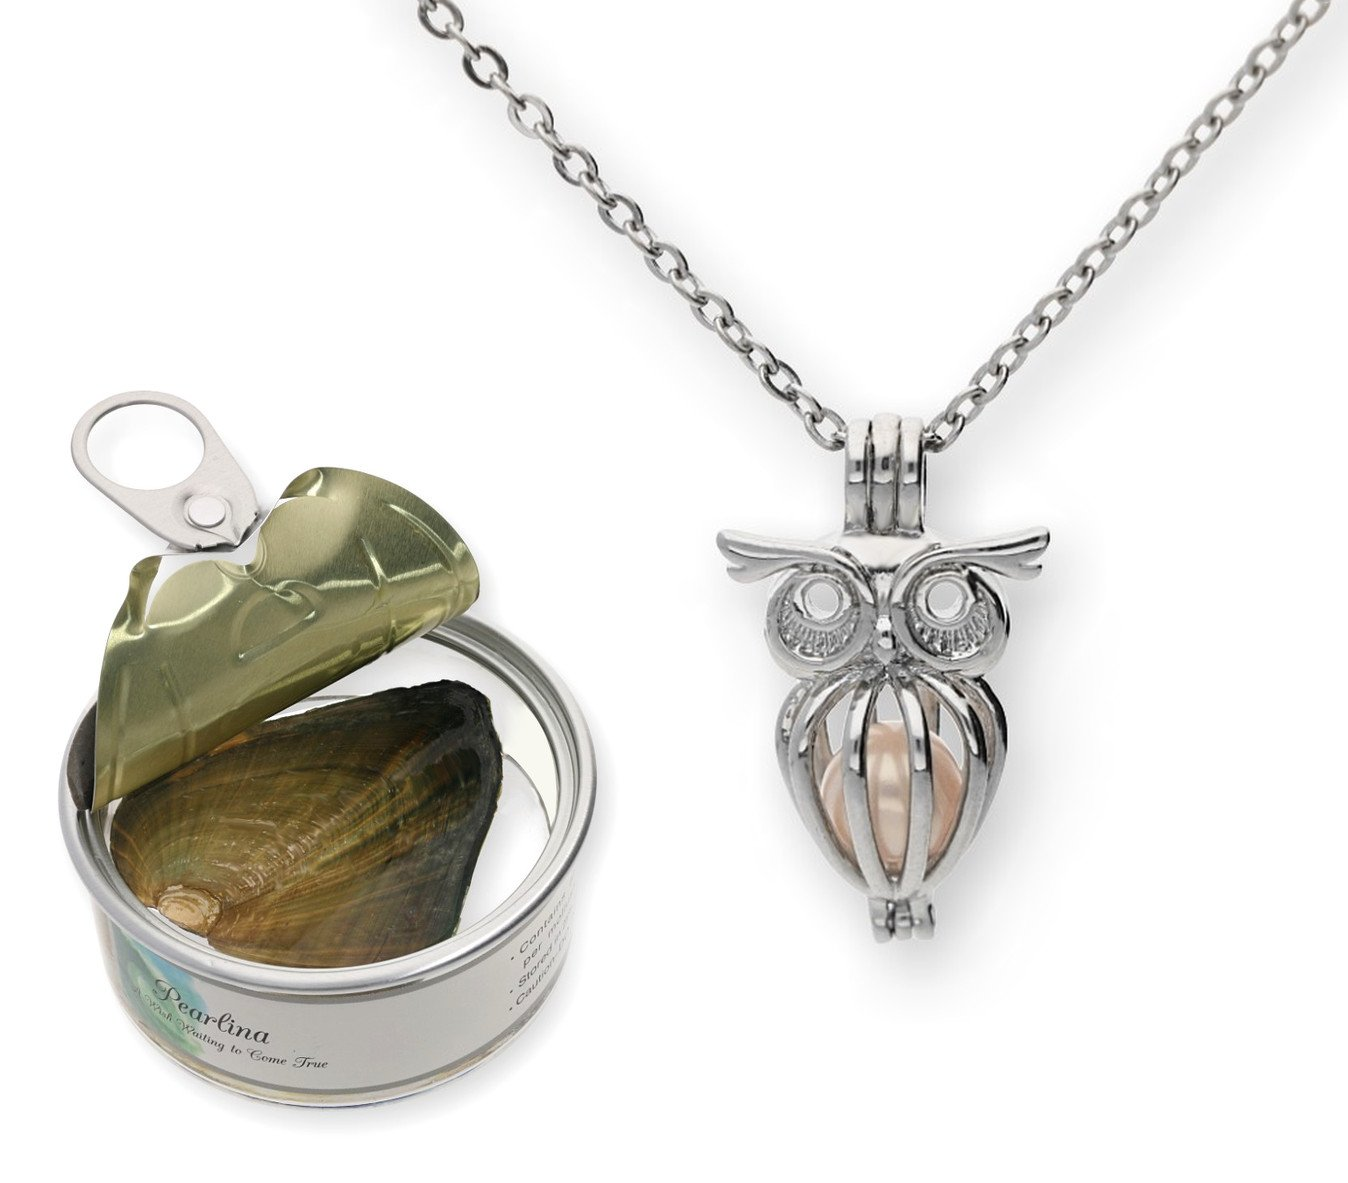 Pearlina Owl Cultured Pearl in Oyster Necklace Set Silver-tone Cage w/Stainless Steel Chain 18''